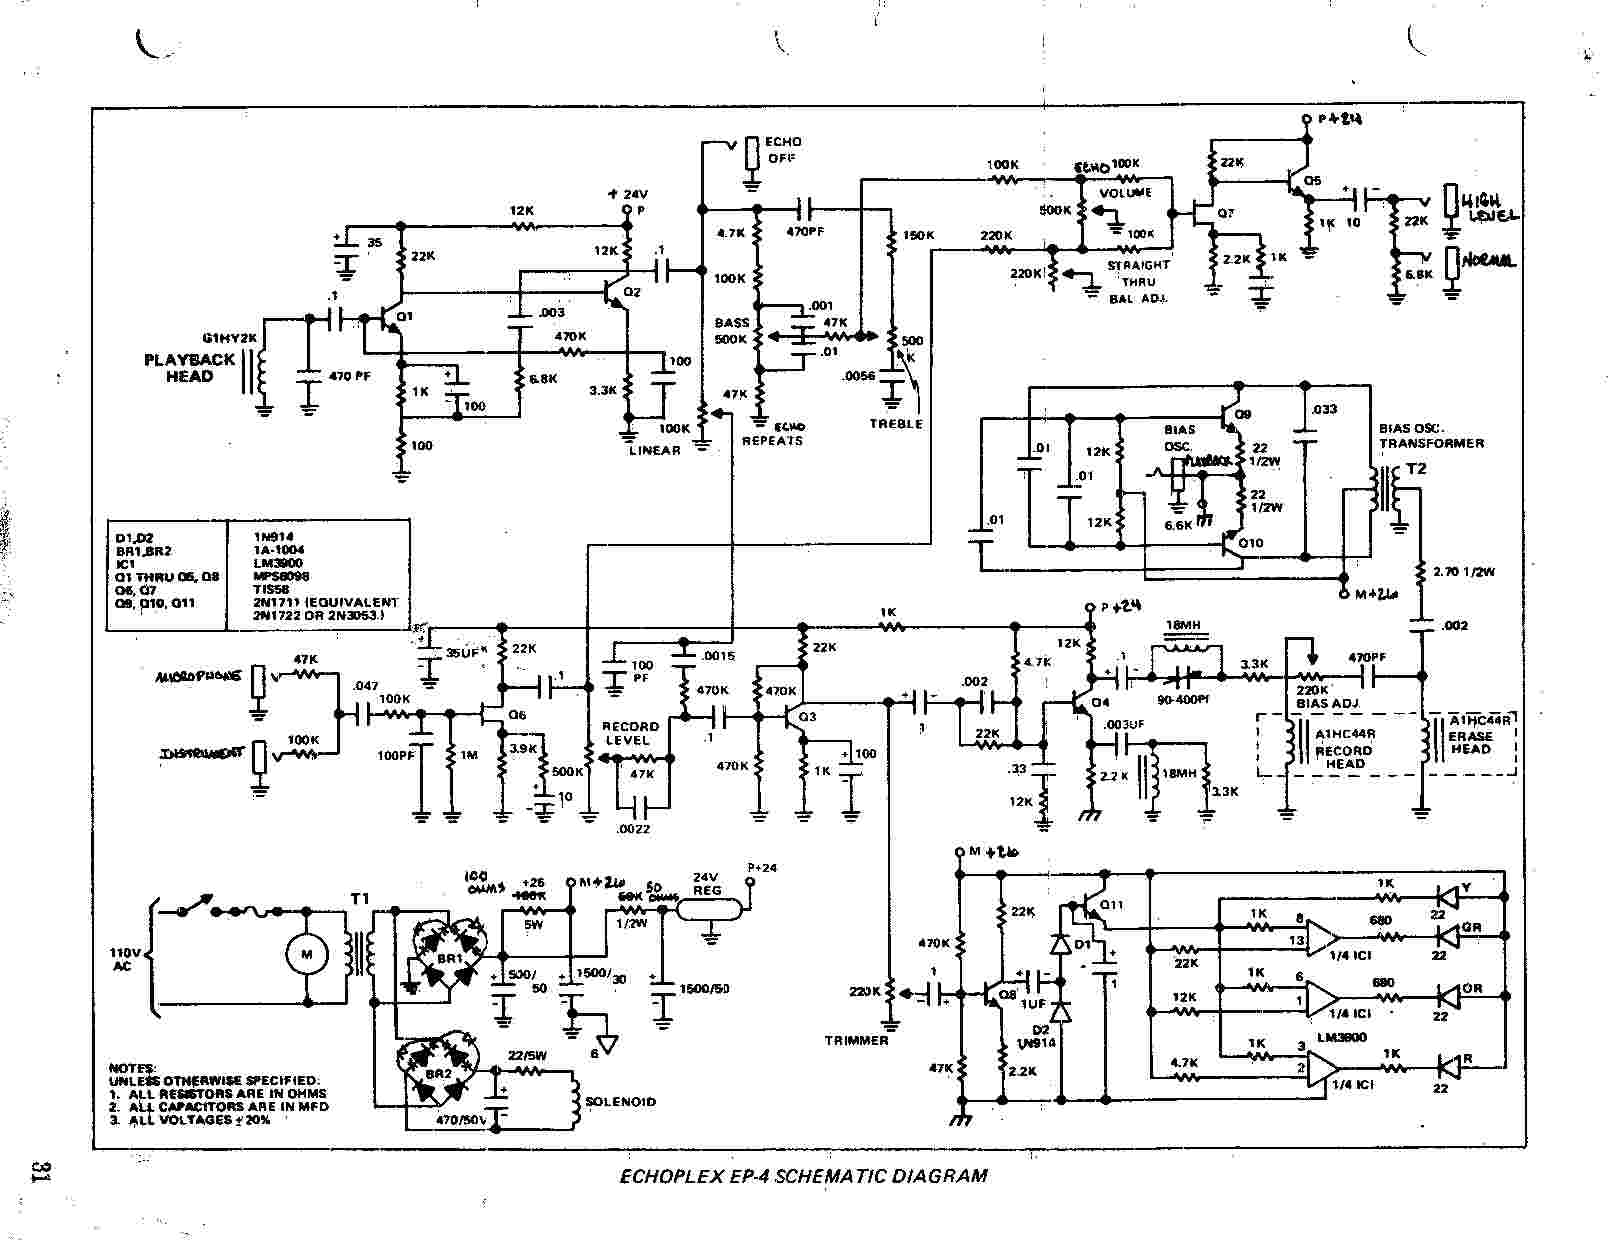 Misc Index on fender bassman schematic, marshall jtm 45 schematic, fender twin schematic, fender 5f6a schematic, fender champ schematic, bugera schematic, rlp 100 pro 100 schematic, mackie preamp schematic, vibro-king schematic, fender deluxe schematic, epiphone valve junior schematic, amplifier schematic, hiwatt schematic, marshall super bass schematic, fender vibroverb schematic, fender super reverb schematic,